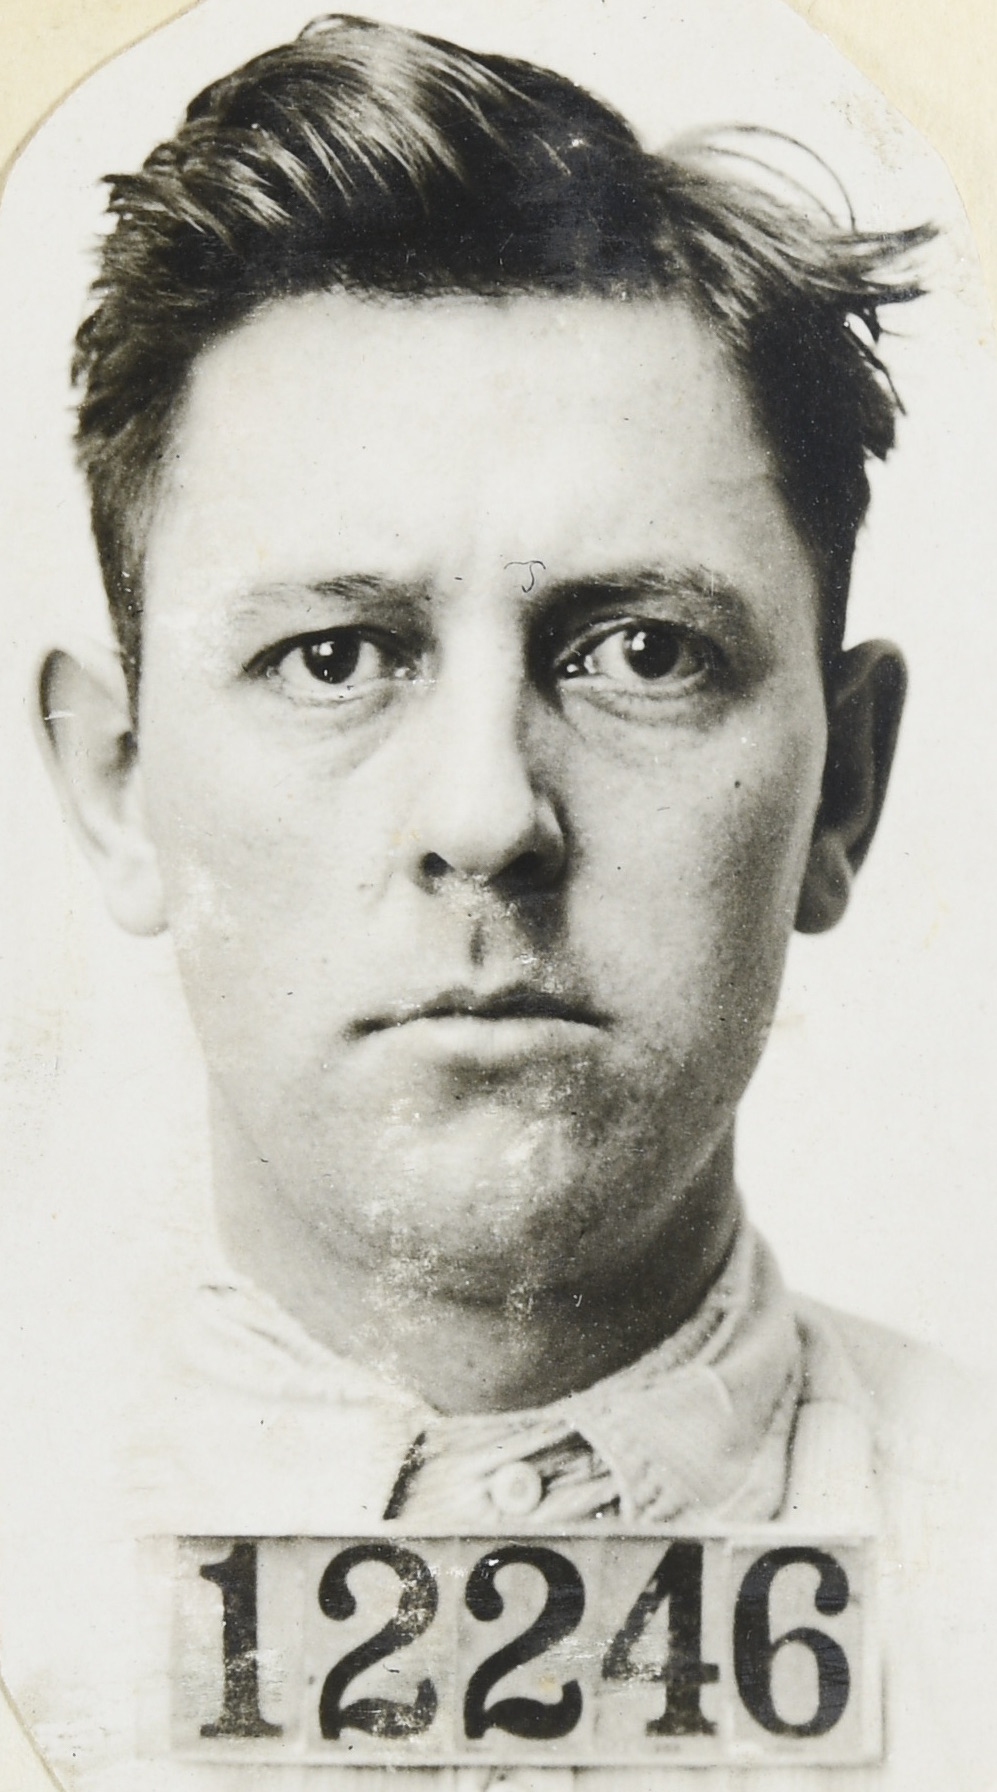 Prisoner mugshot of Fred Burke from the State Prison of Southern Michigan in Jackson, front view only. His prisoner number shown is 12246.